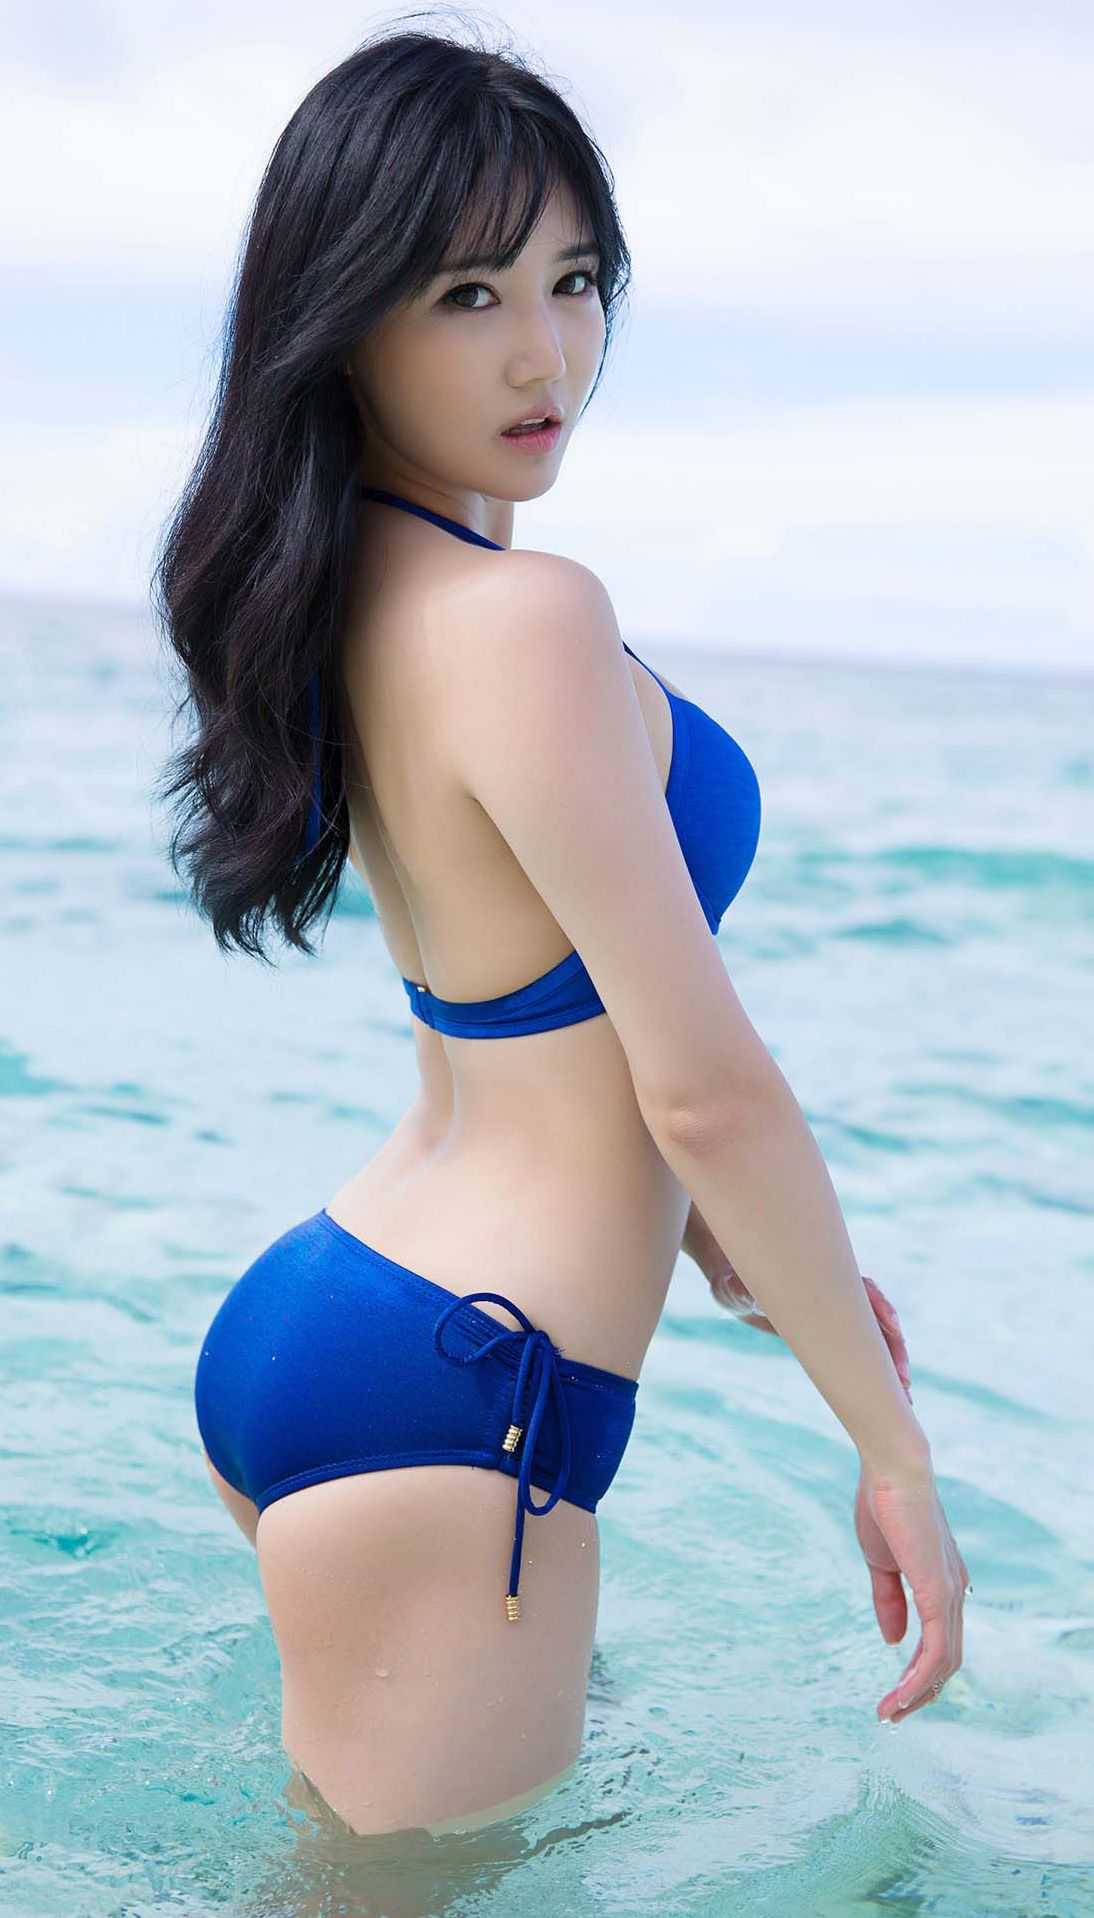 HOT ASIAN MODELS - YOKO - SEXY BIKINI